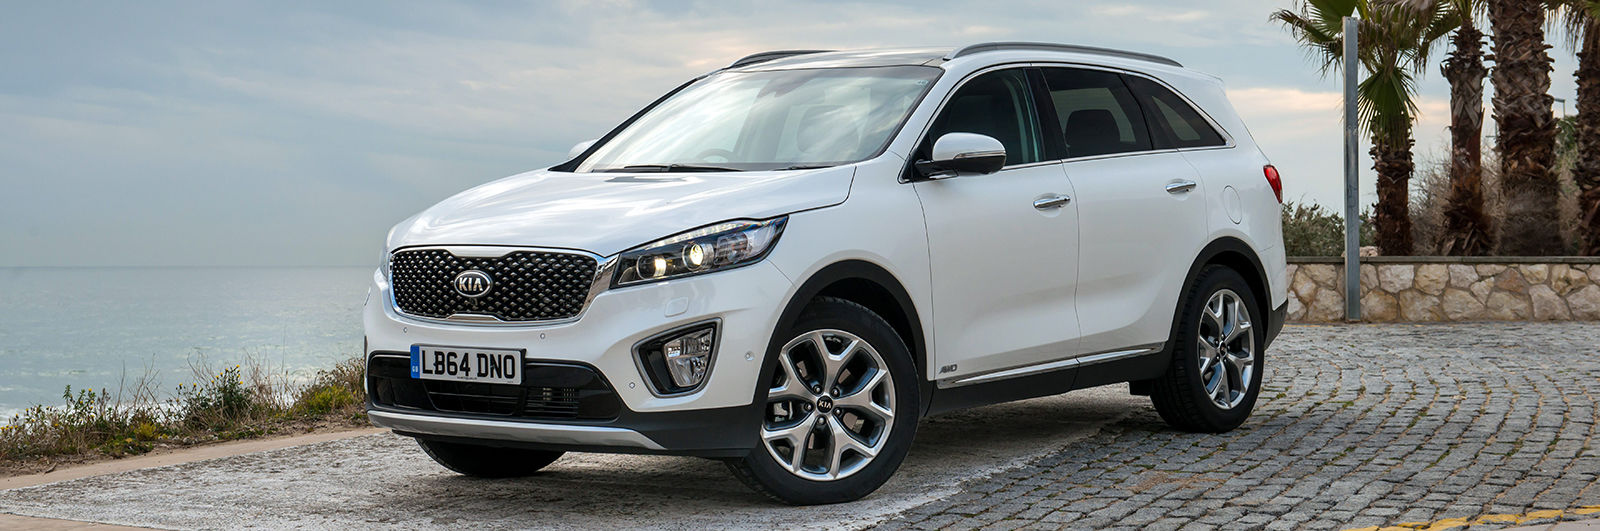 The Kia Sorento Is A Highly Capable Vehicle That Offers Upmarket Features  And Design, But At A Great Value Price. Equipment Levels Are High And It  Gets ...